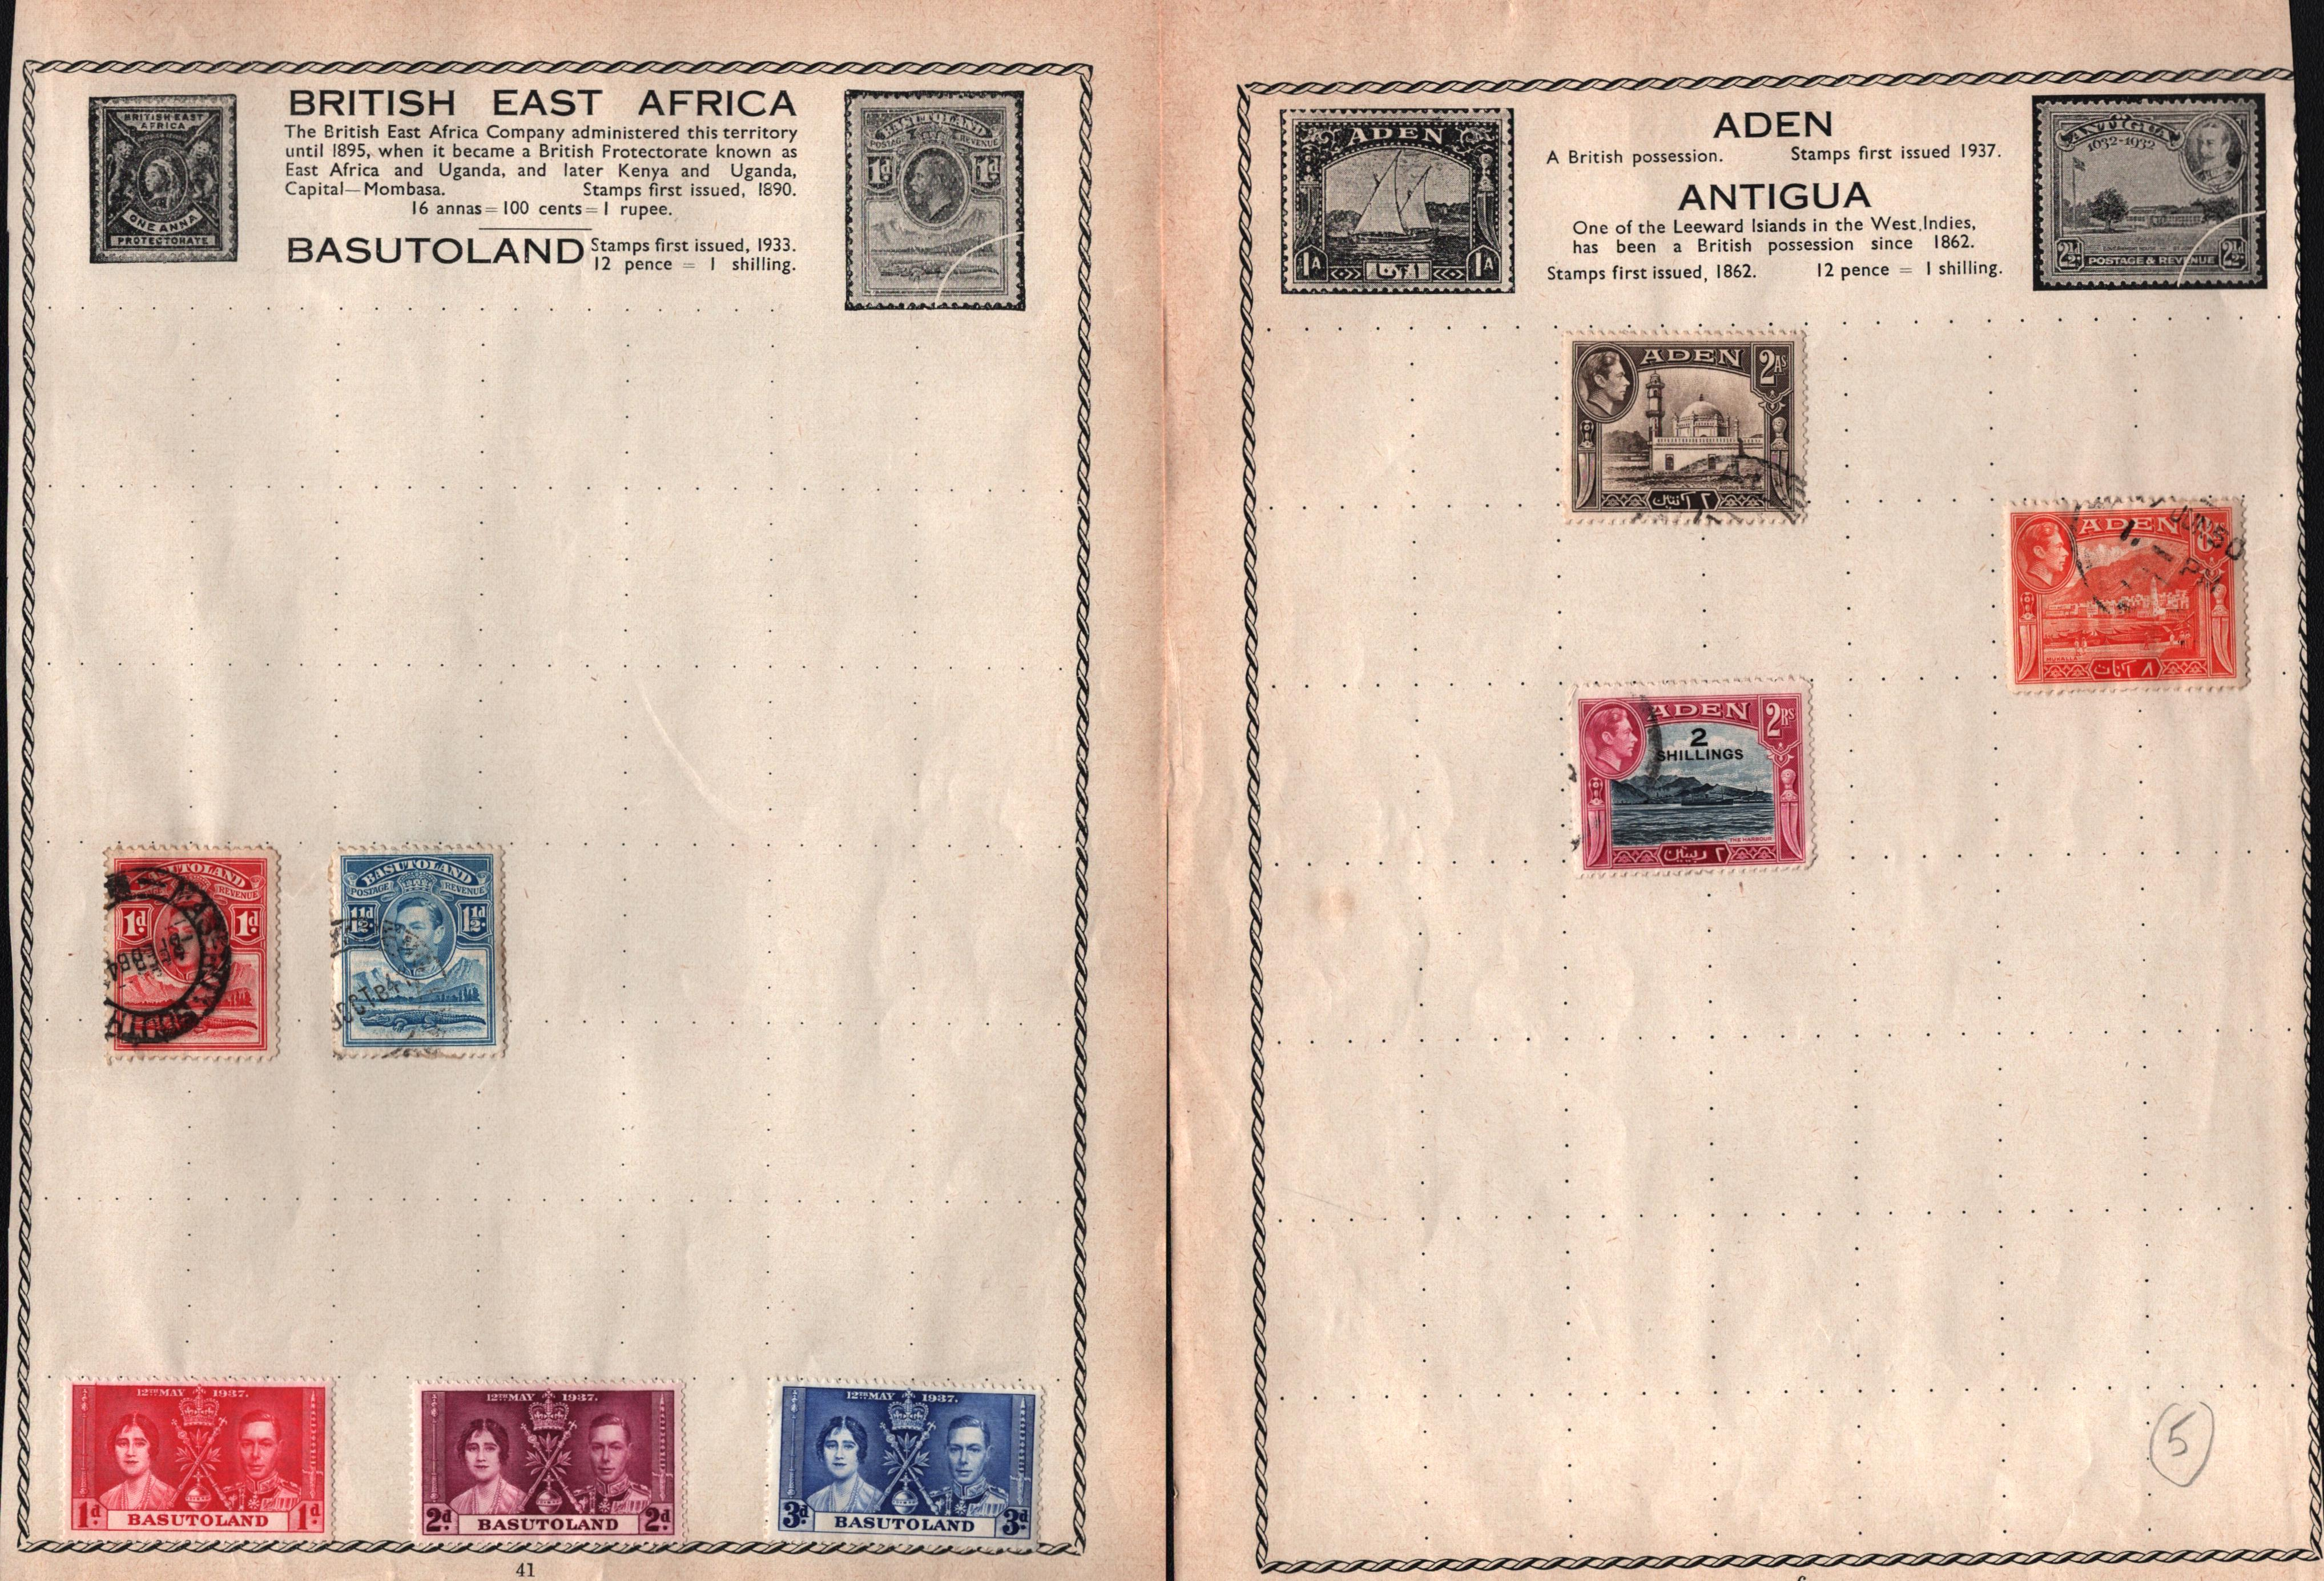 13 loose album pages of BCW stamps. Includes Basutoland, St Helena, Cyprus and more. Good condition.